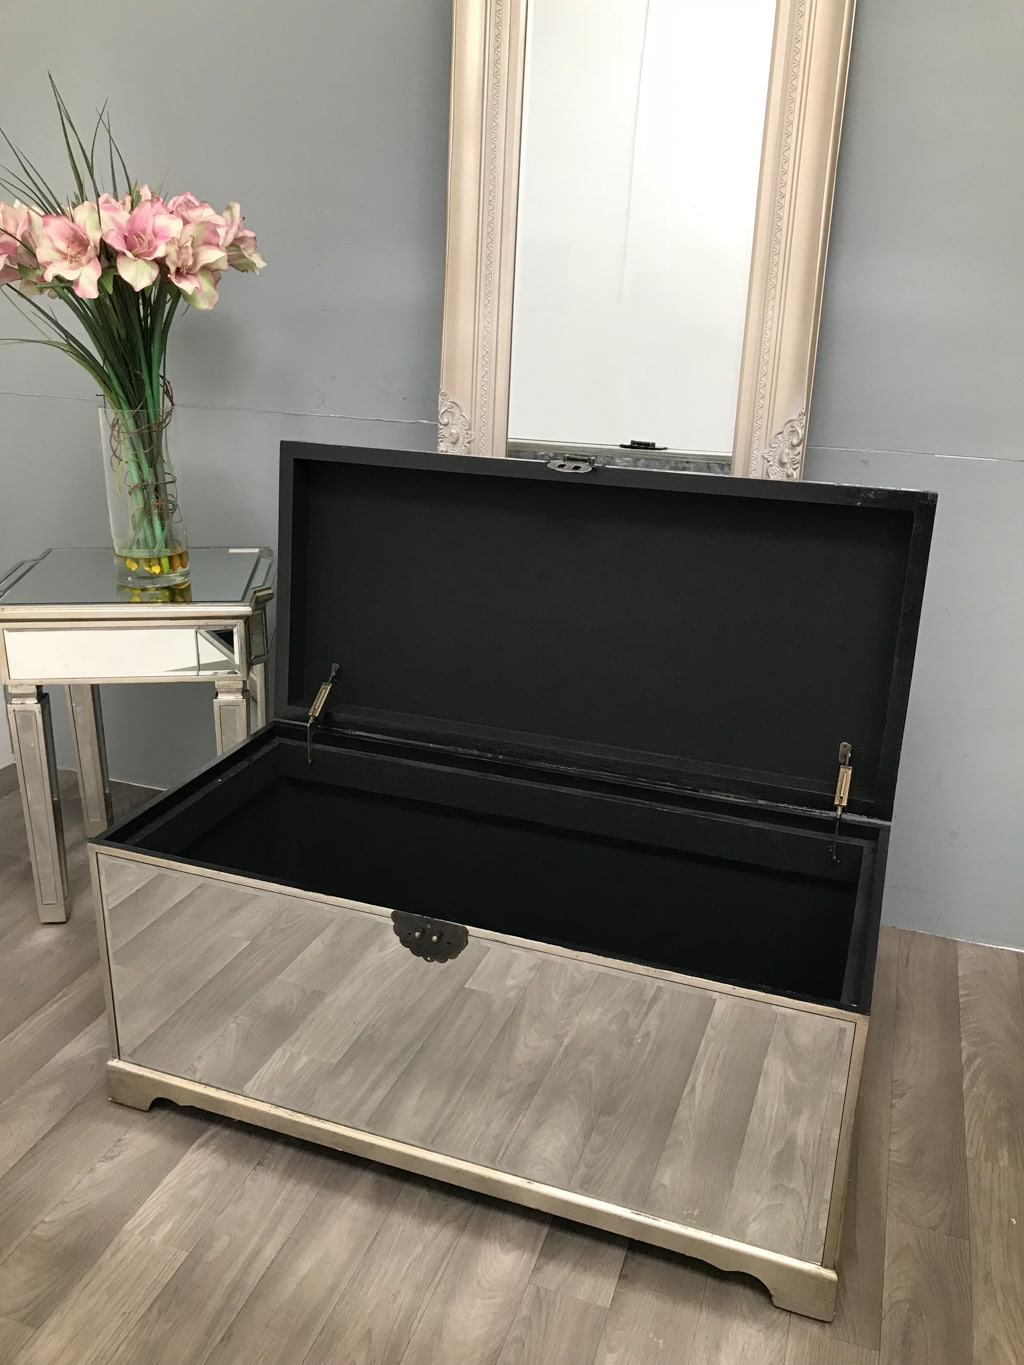 Mirrored Trunk Blanket Storage Ottoman